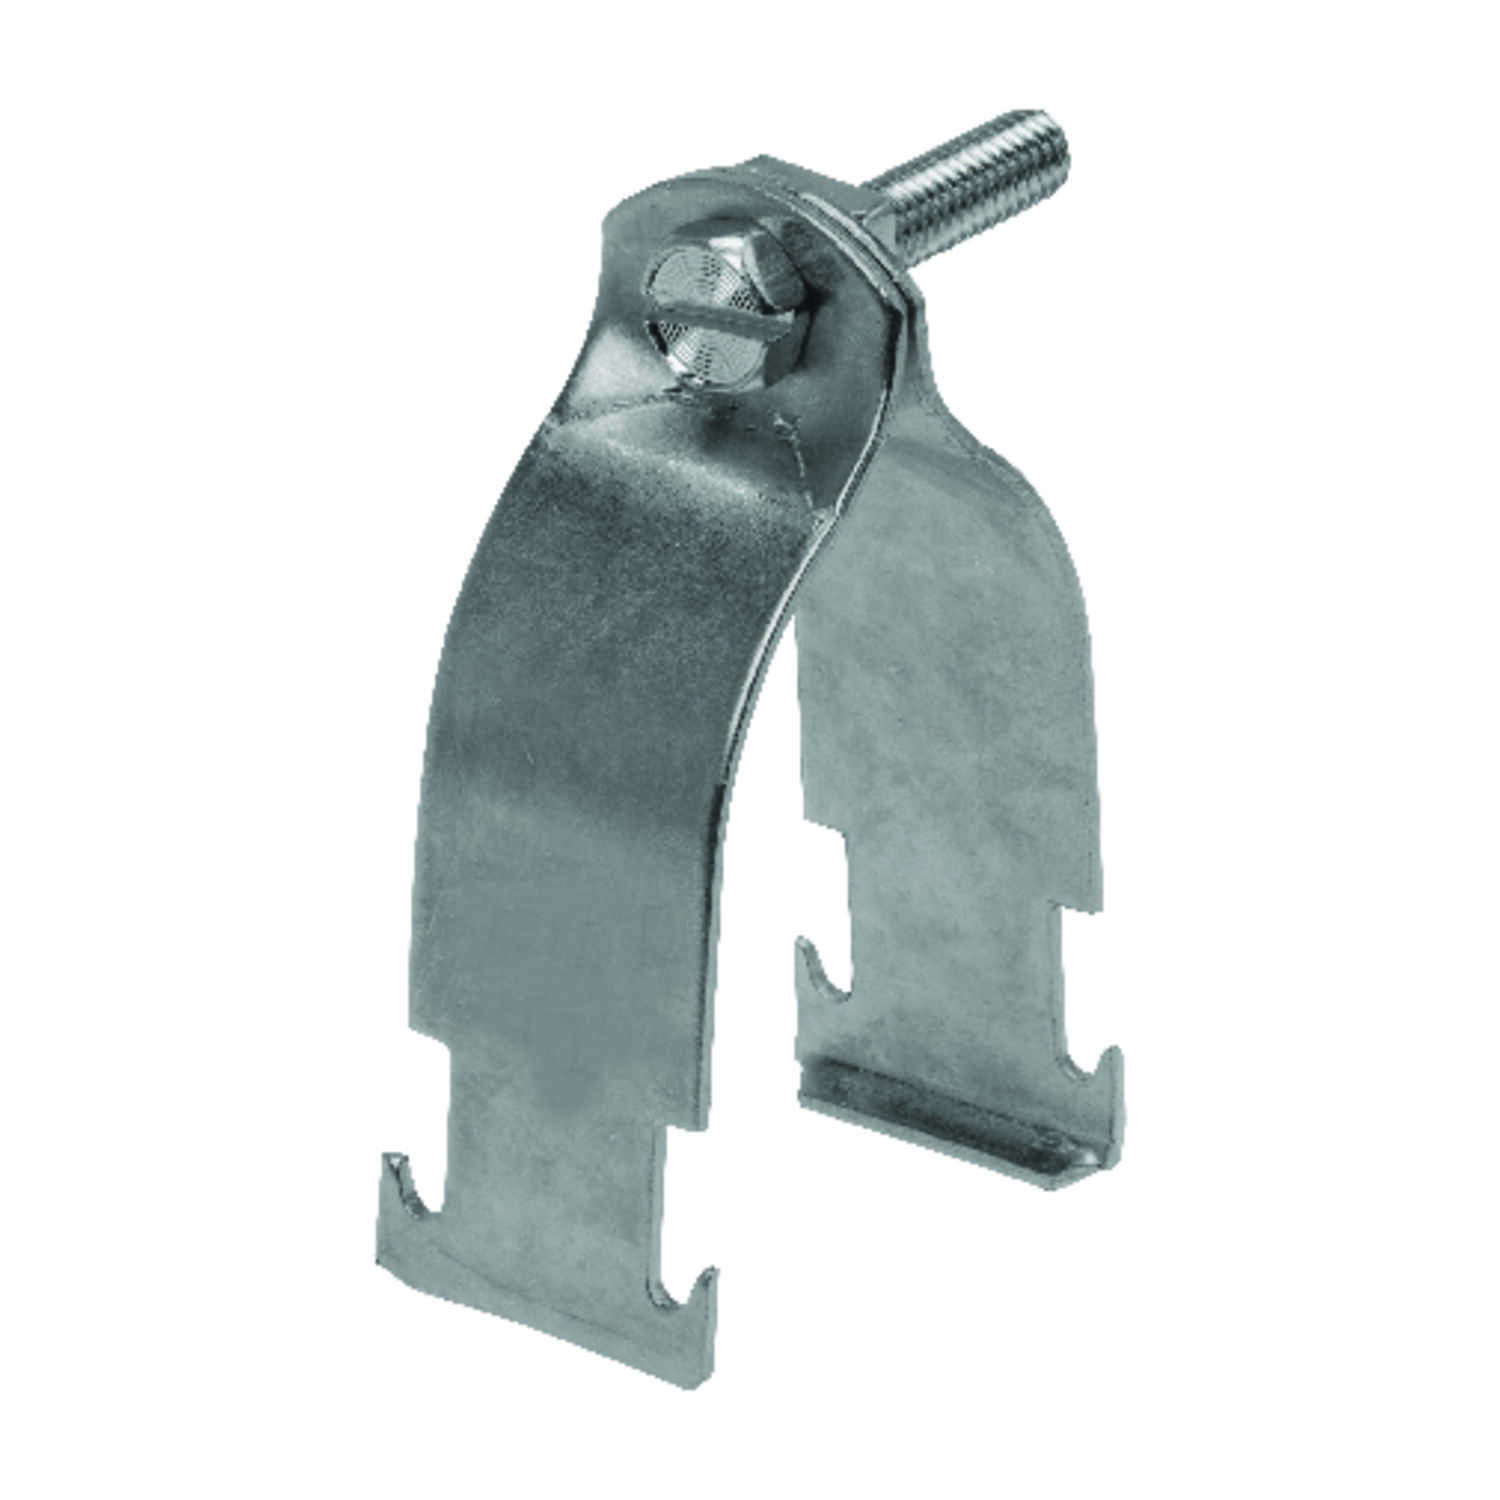 Unistrut  1-1/2 in. Steel  Conduit Clamp  1 pk